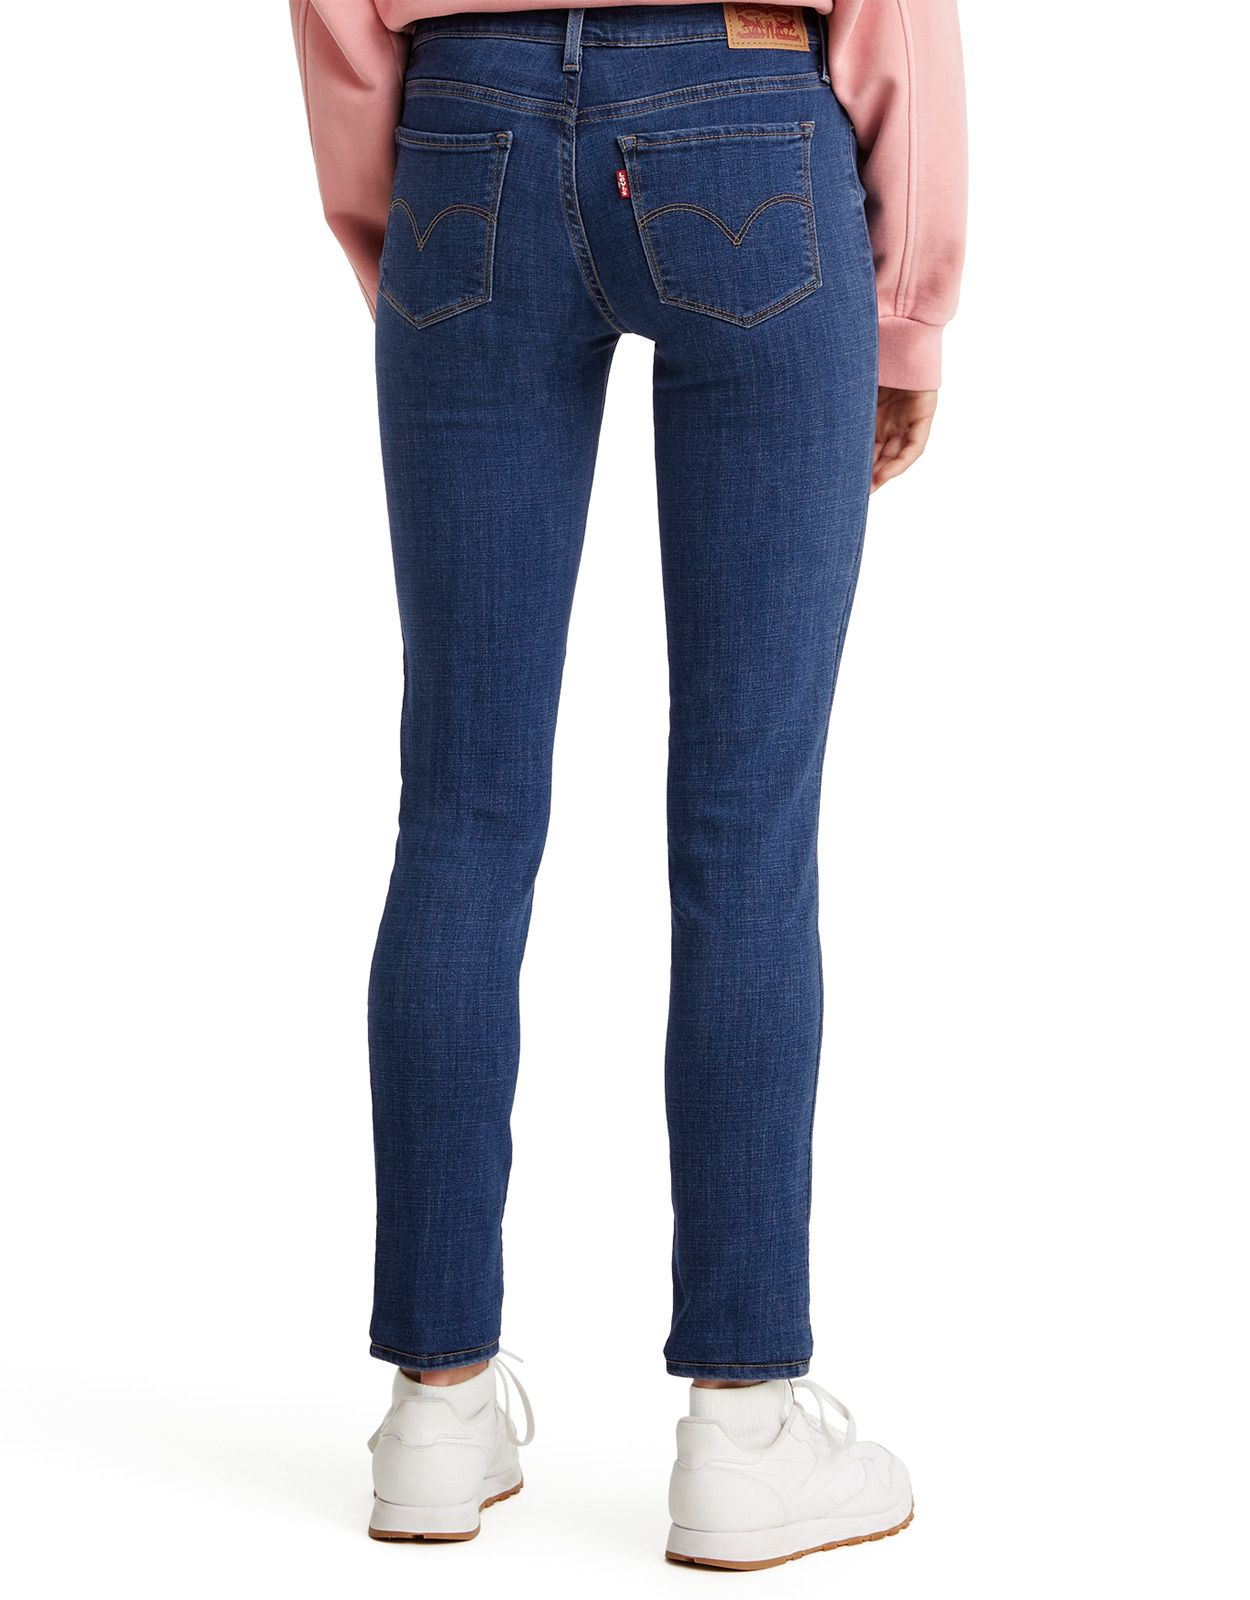 Levi's Women's 711 Skinny Stretch Mid Rise Skinny Jeans - Marine Overboard